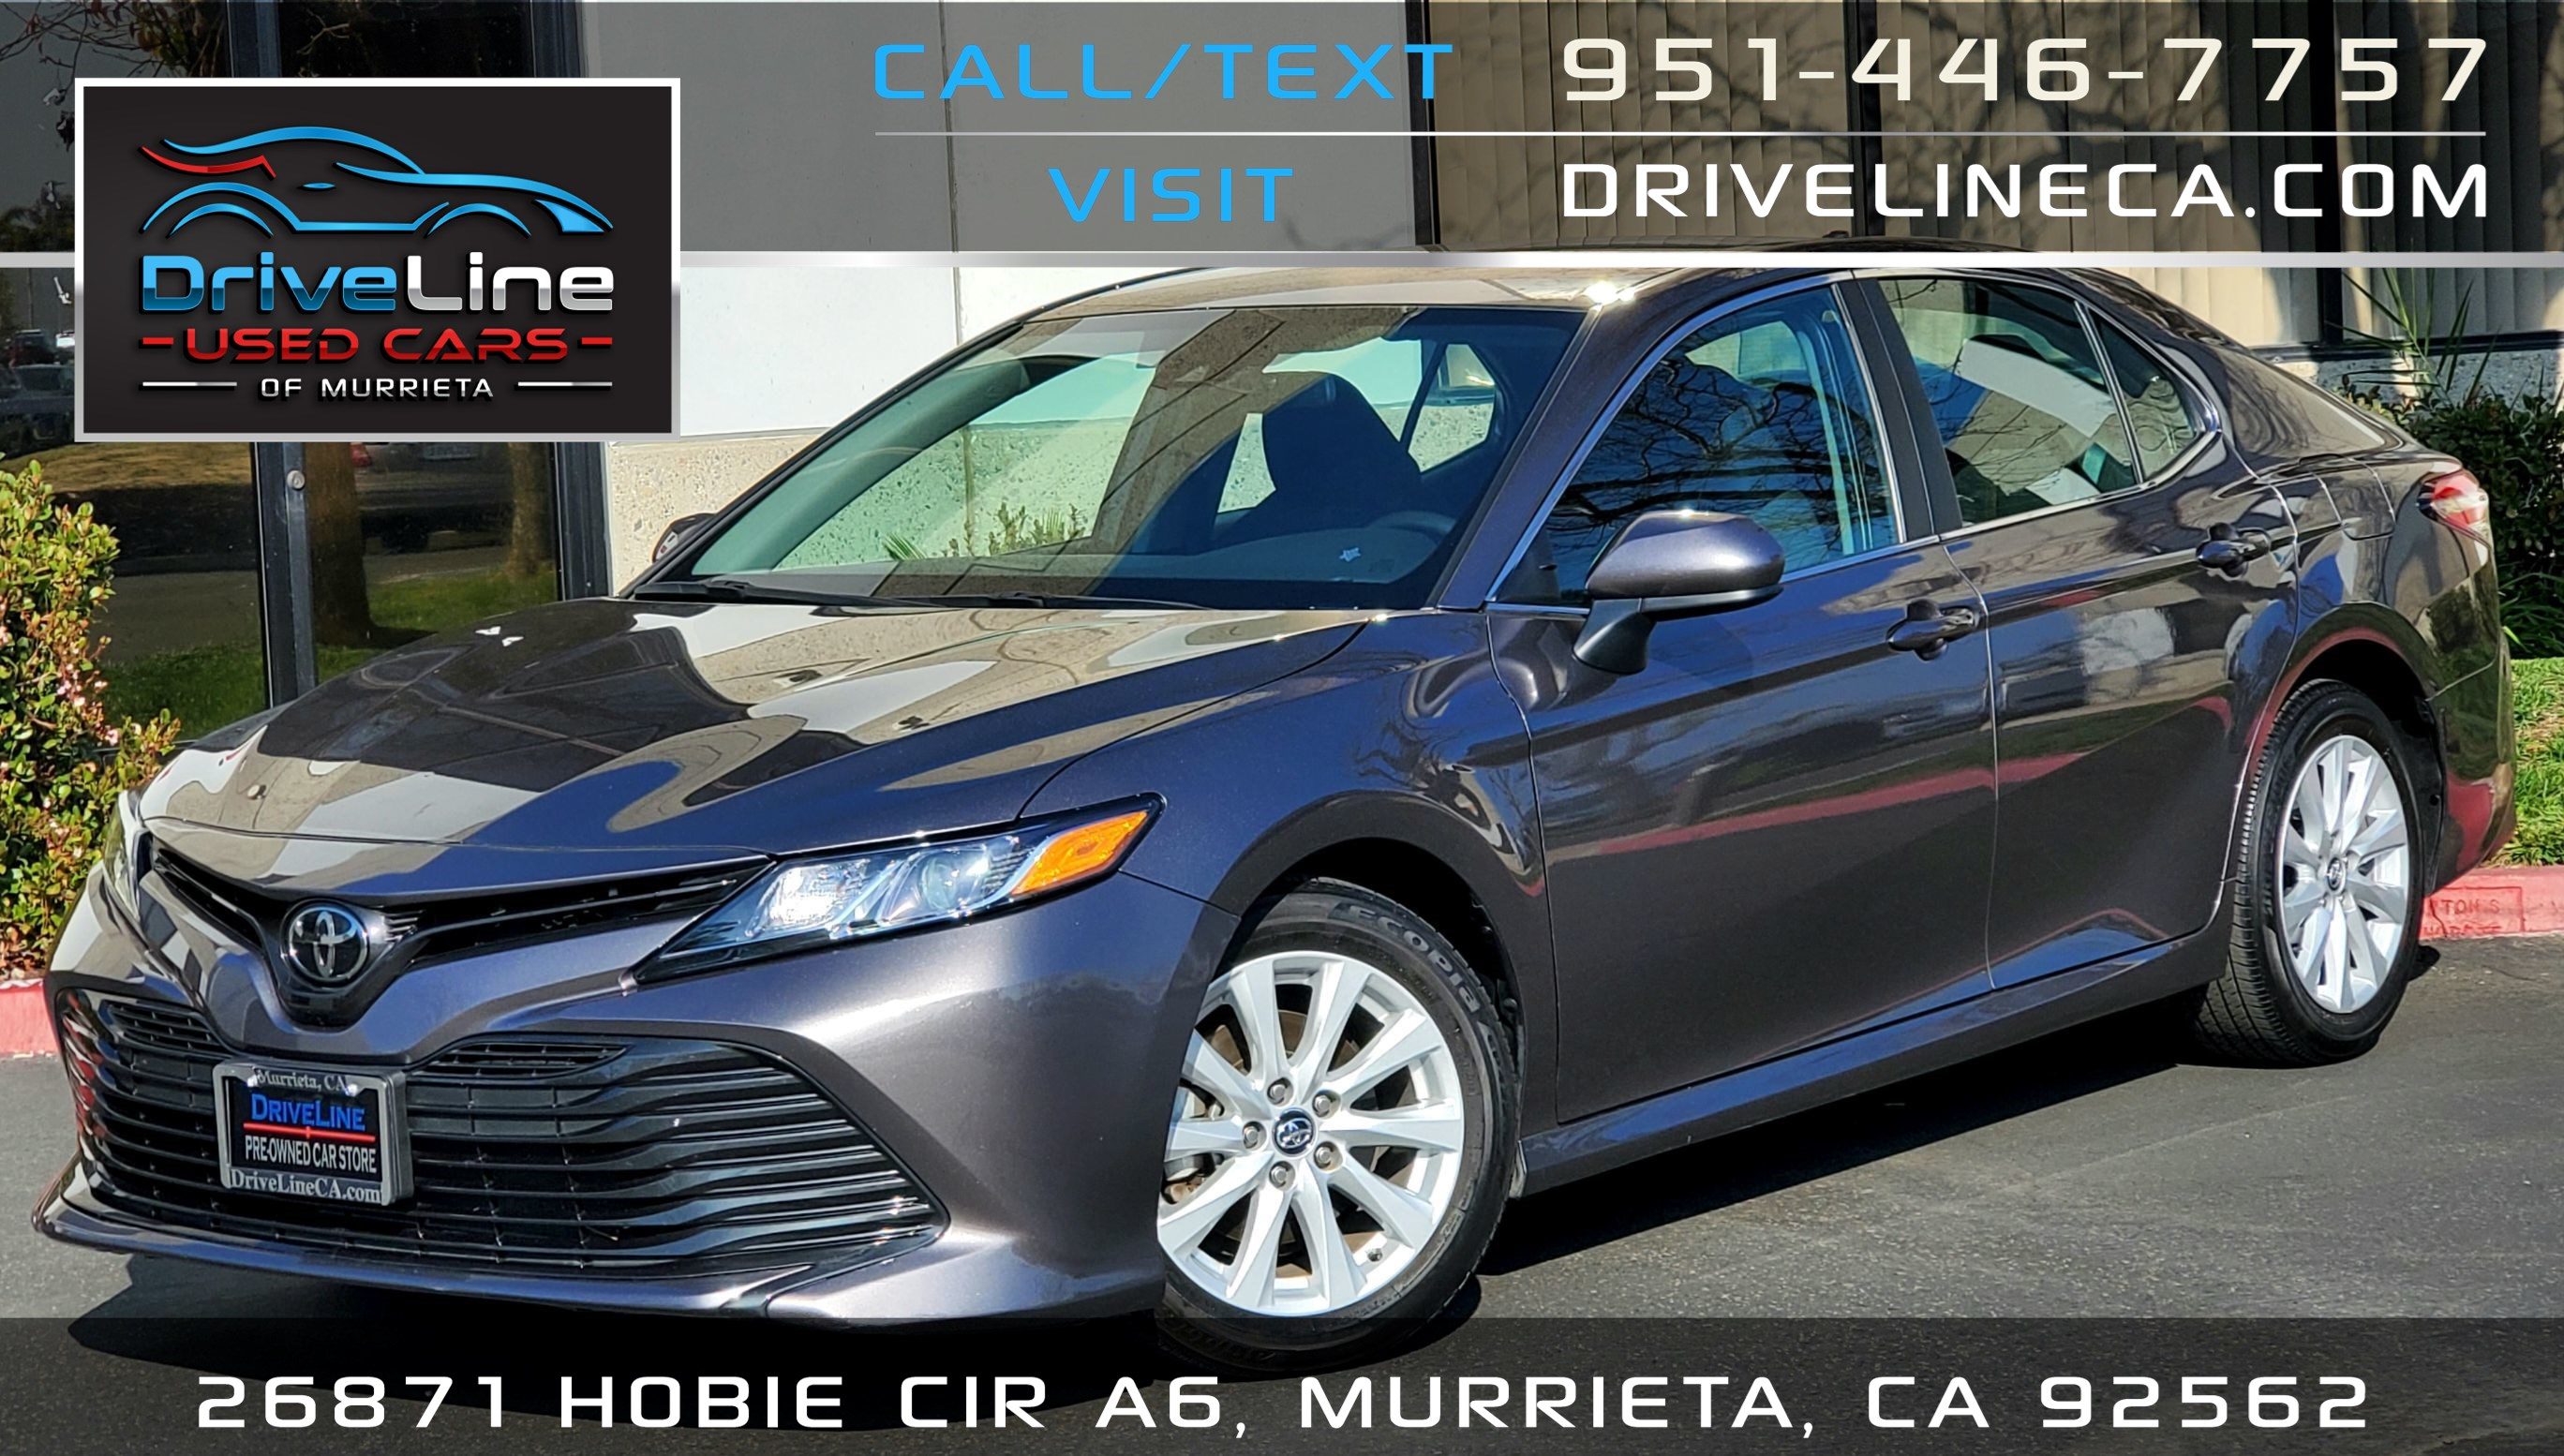 2020 Toyota Camry LE - Rear View Camera - Driver Assist